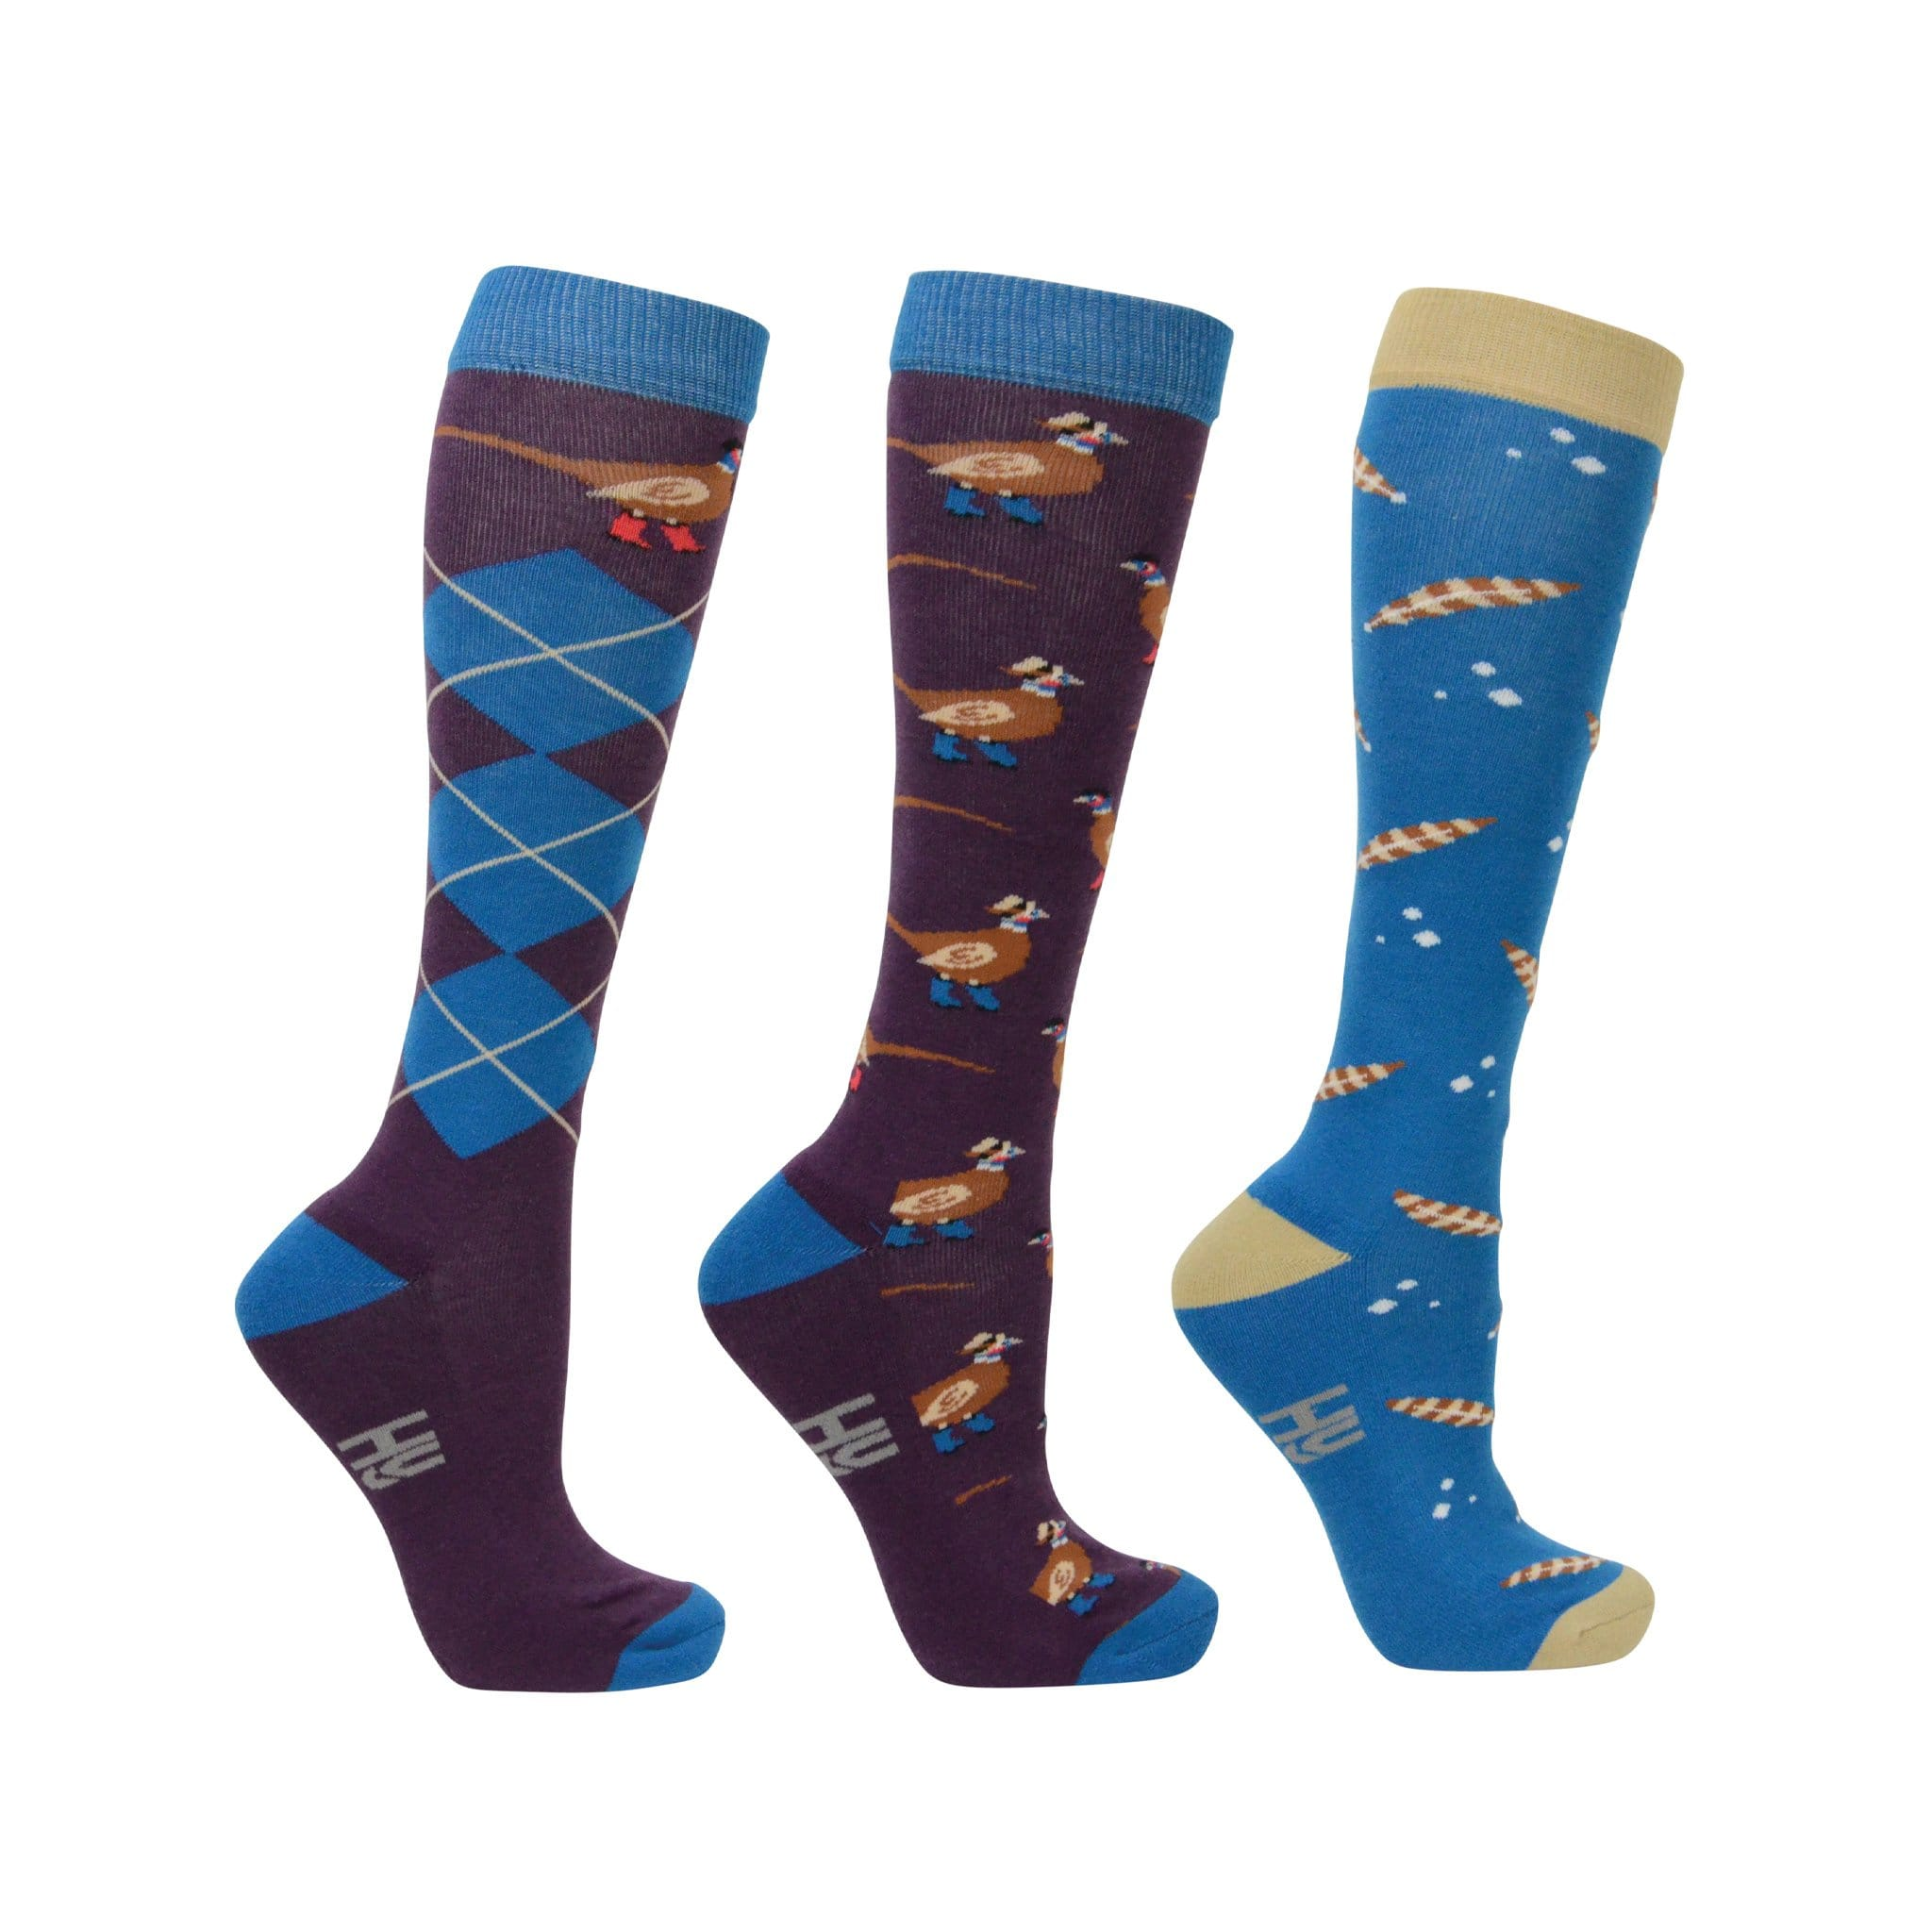 Hy Equestrian Patrick the Pheasant Socks (Pack of 3) 28445